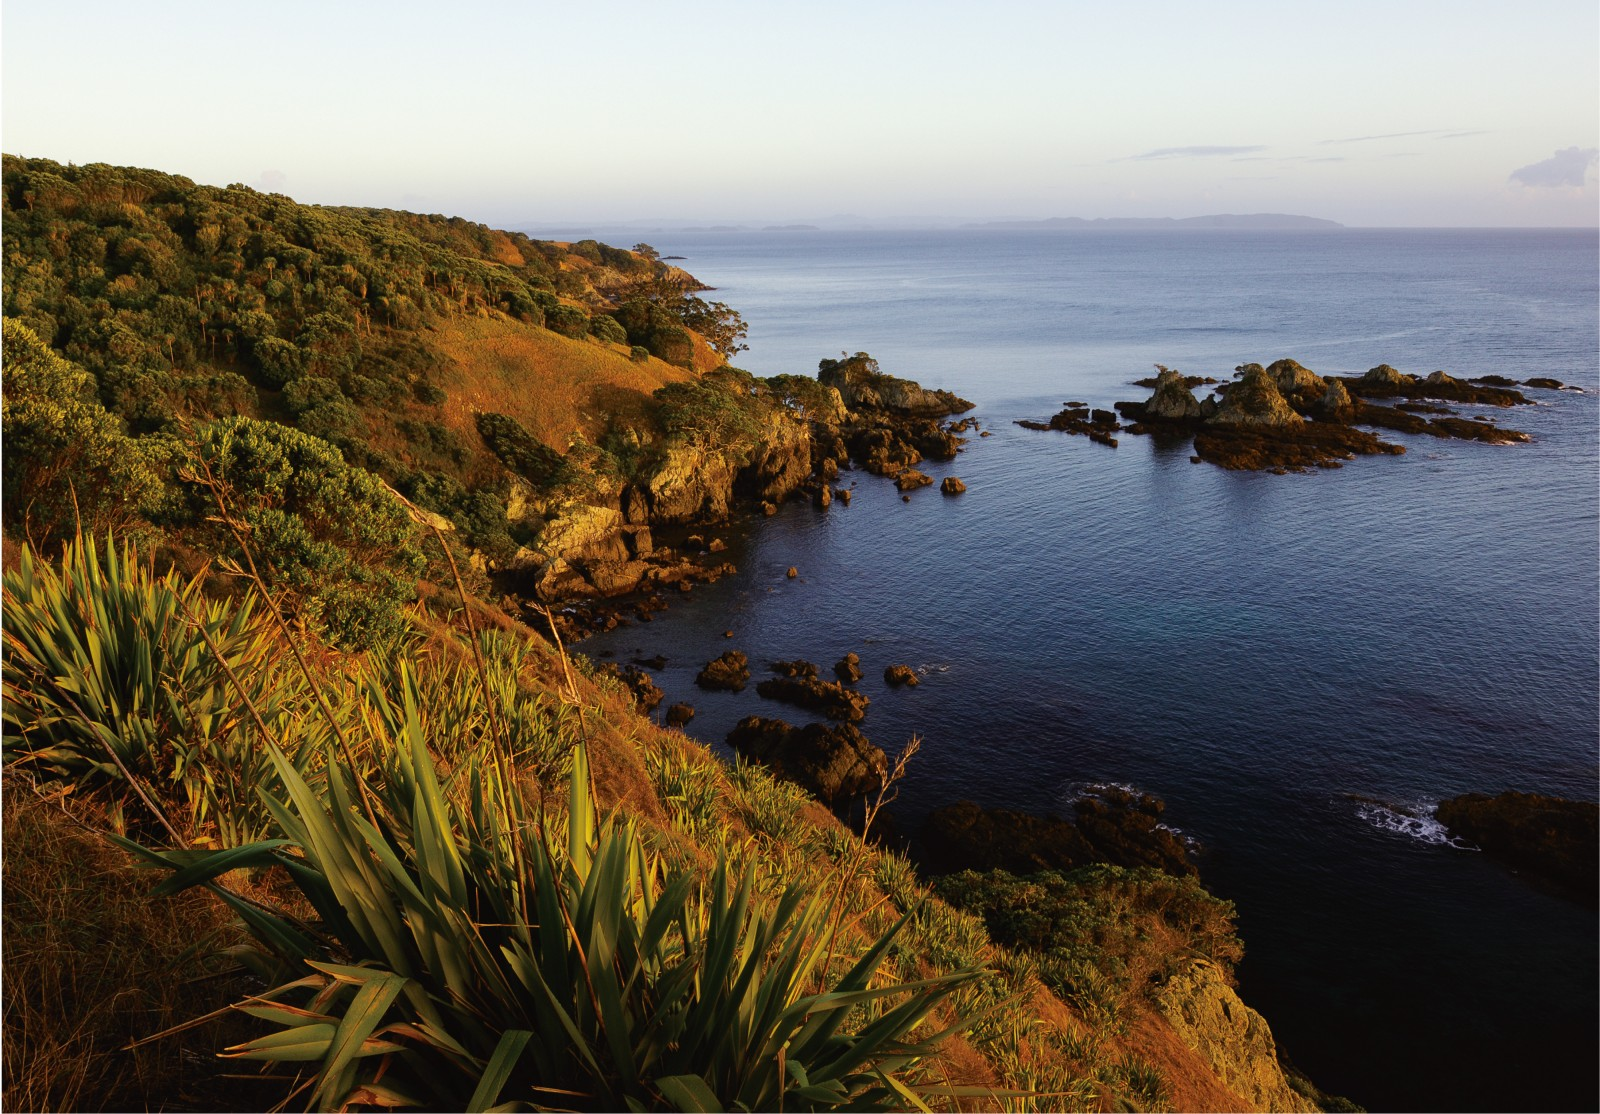 Looking north from a northern bay, Kawau Island shimmers on the horizon. In the region of The Arches, ragged cliffs eroded by sea and buffeted by high winds make access to Tiri's east coast difficult.